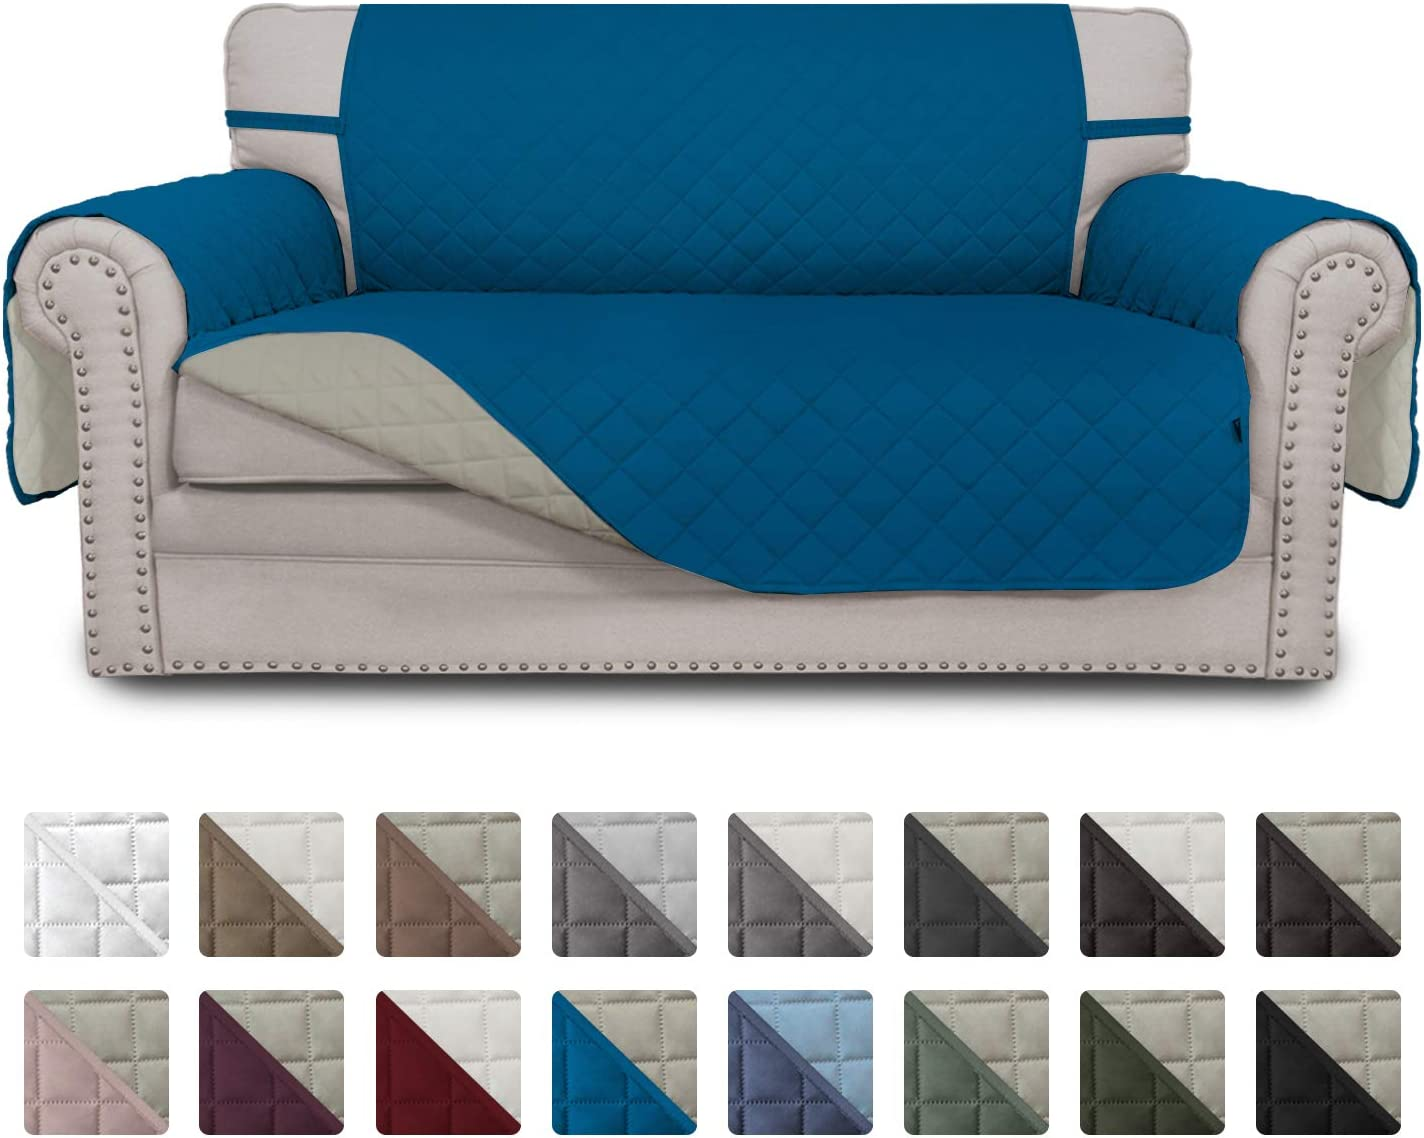 Easy-Going Sofa Slipcover Reversible Loveseat Cover Water Resistant Couch Cover Furniture Protector with Elastic Straps for Pets Kids Children Dog Cat(Loveseat,PeacockBlue/Beige)